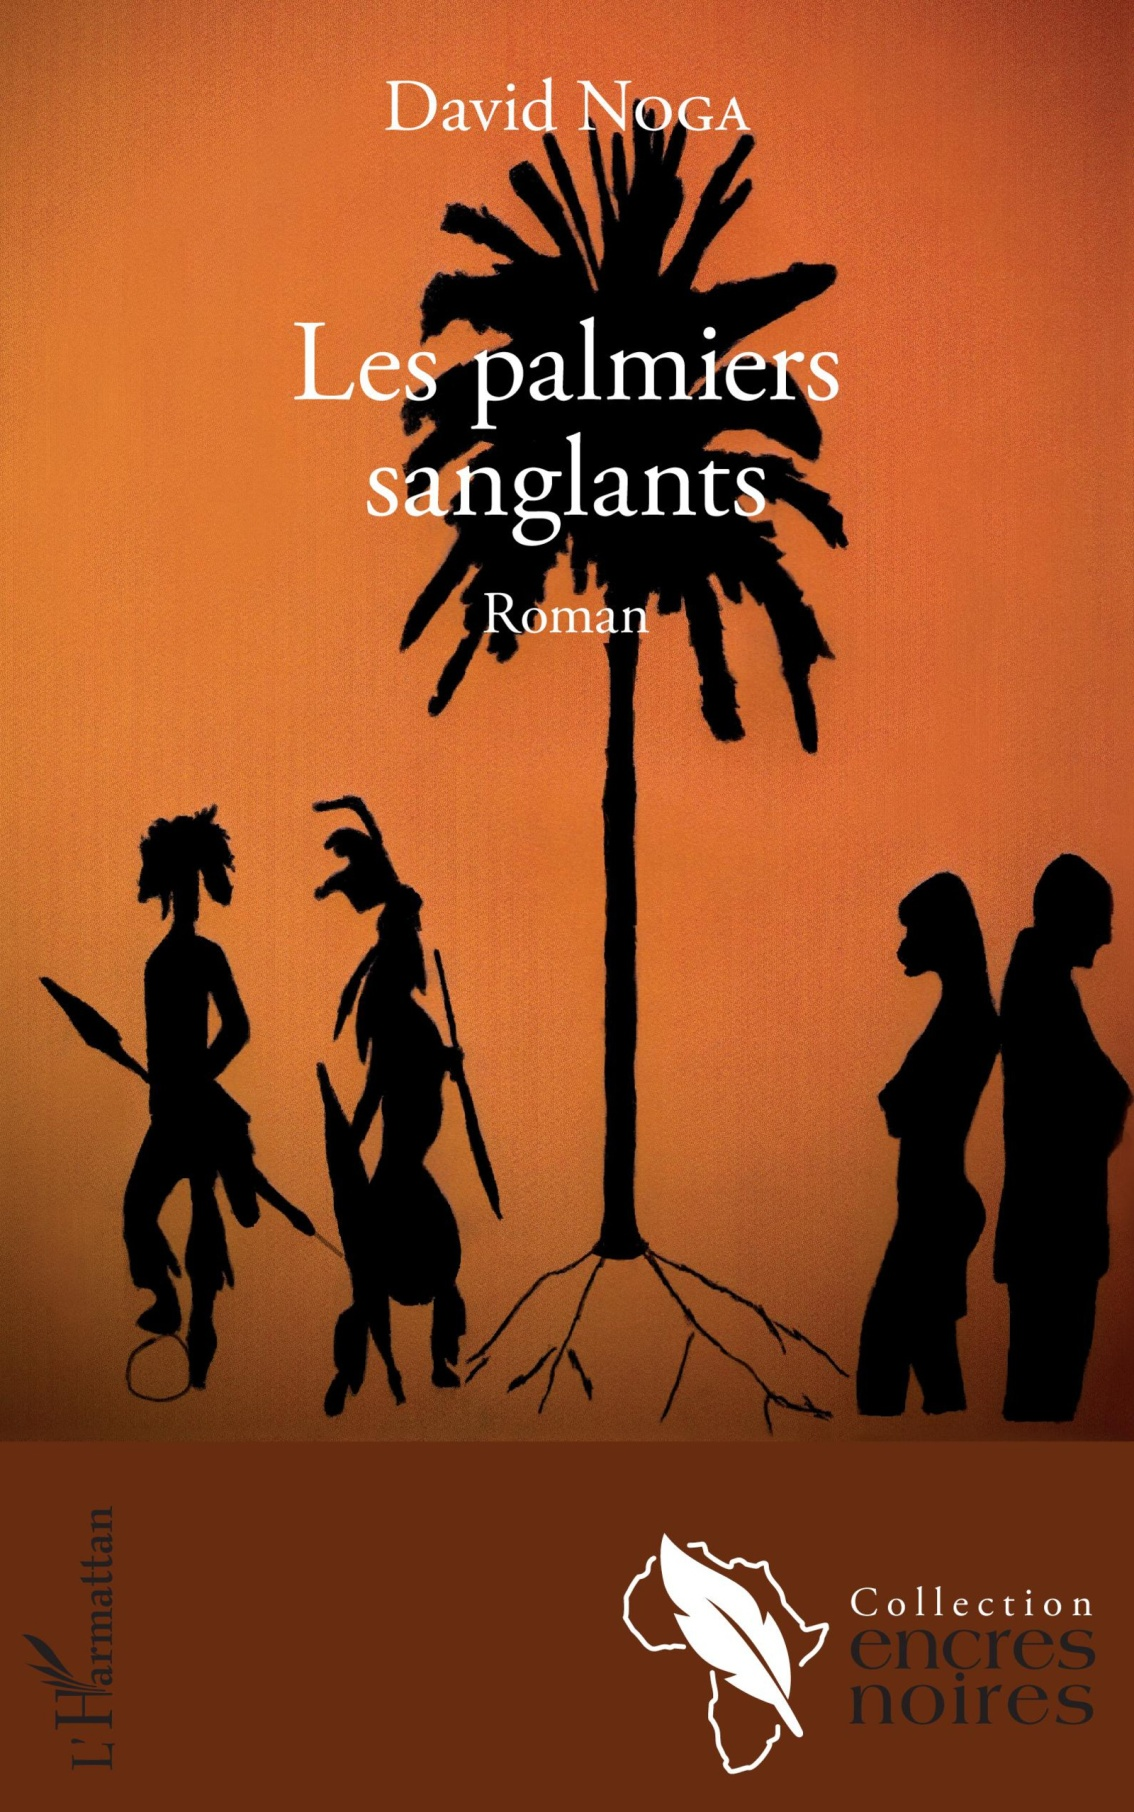 Les palmiers sanglants – David Noga – 2017